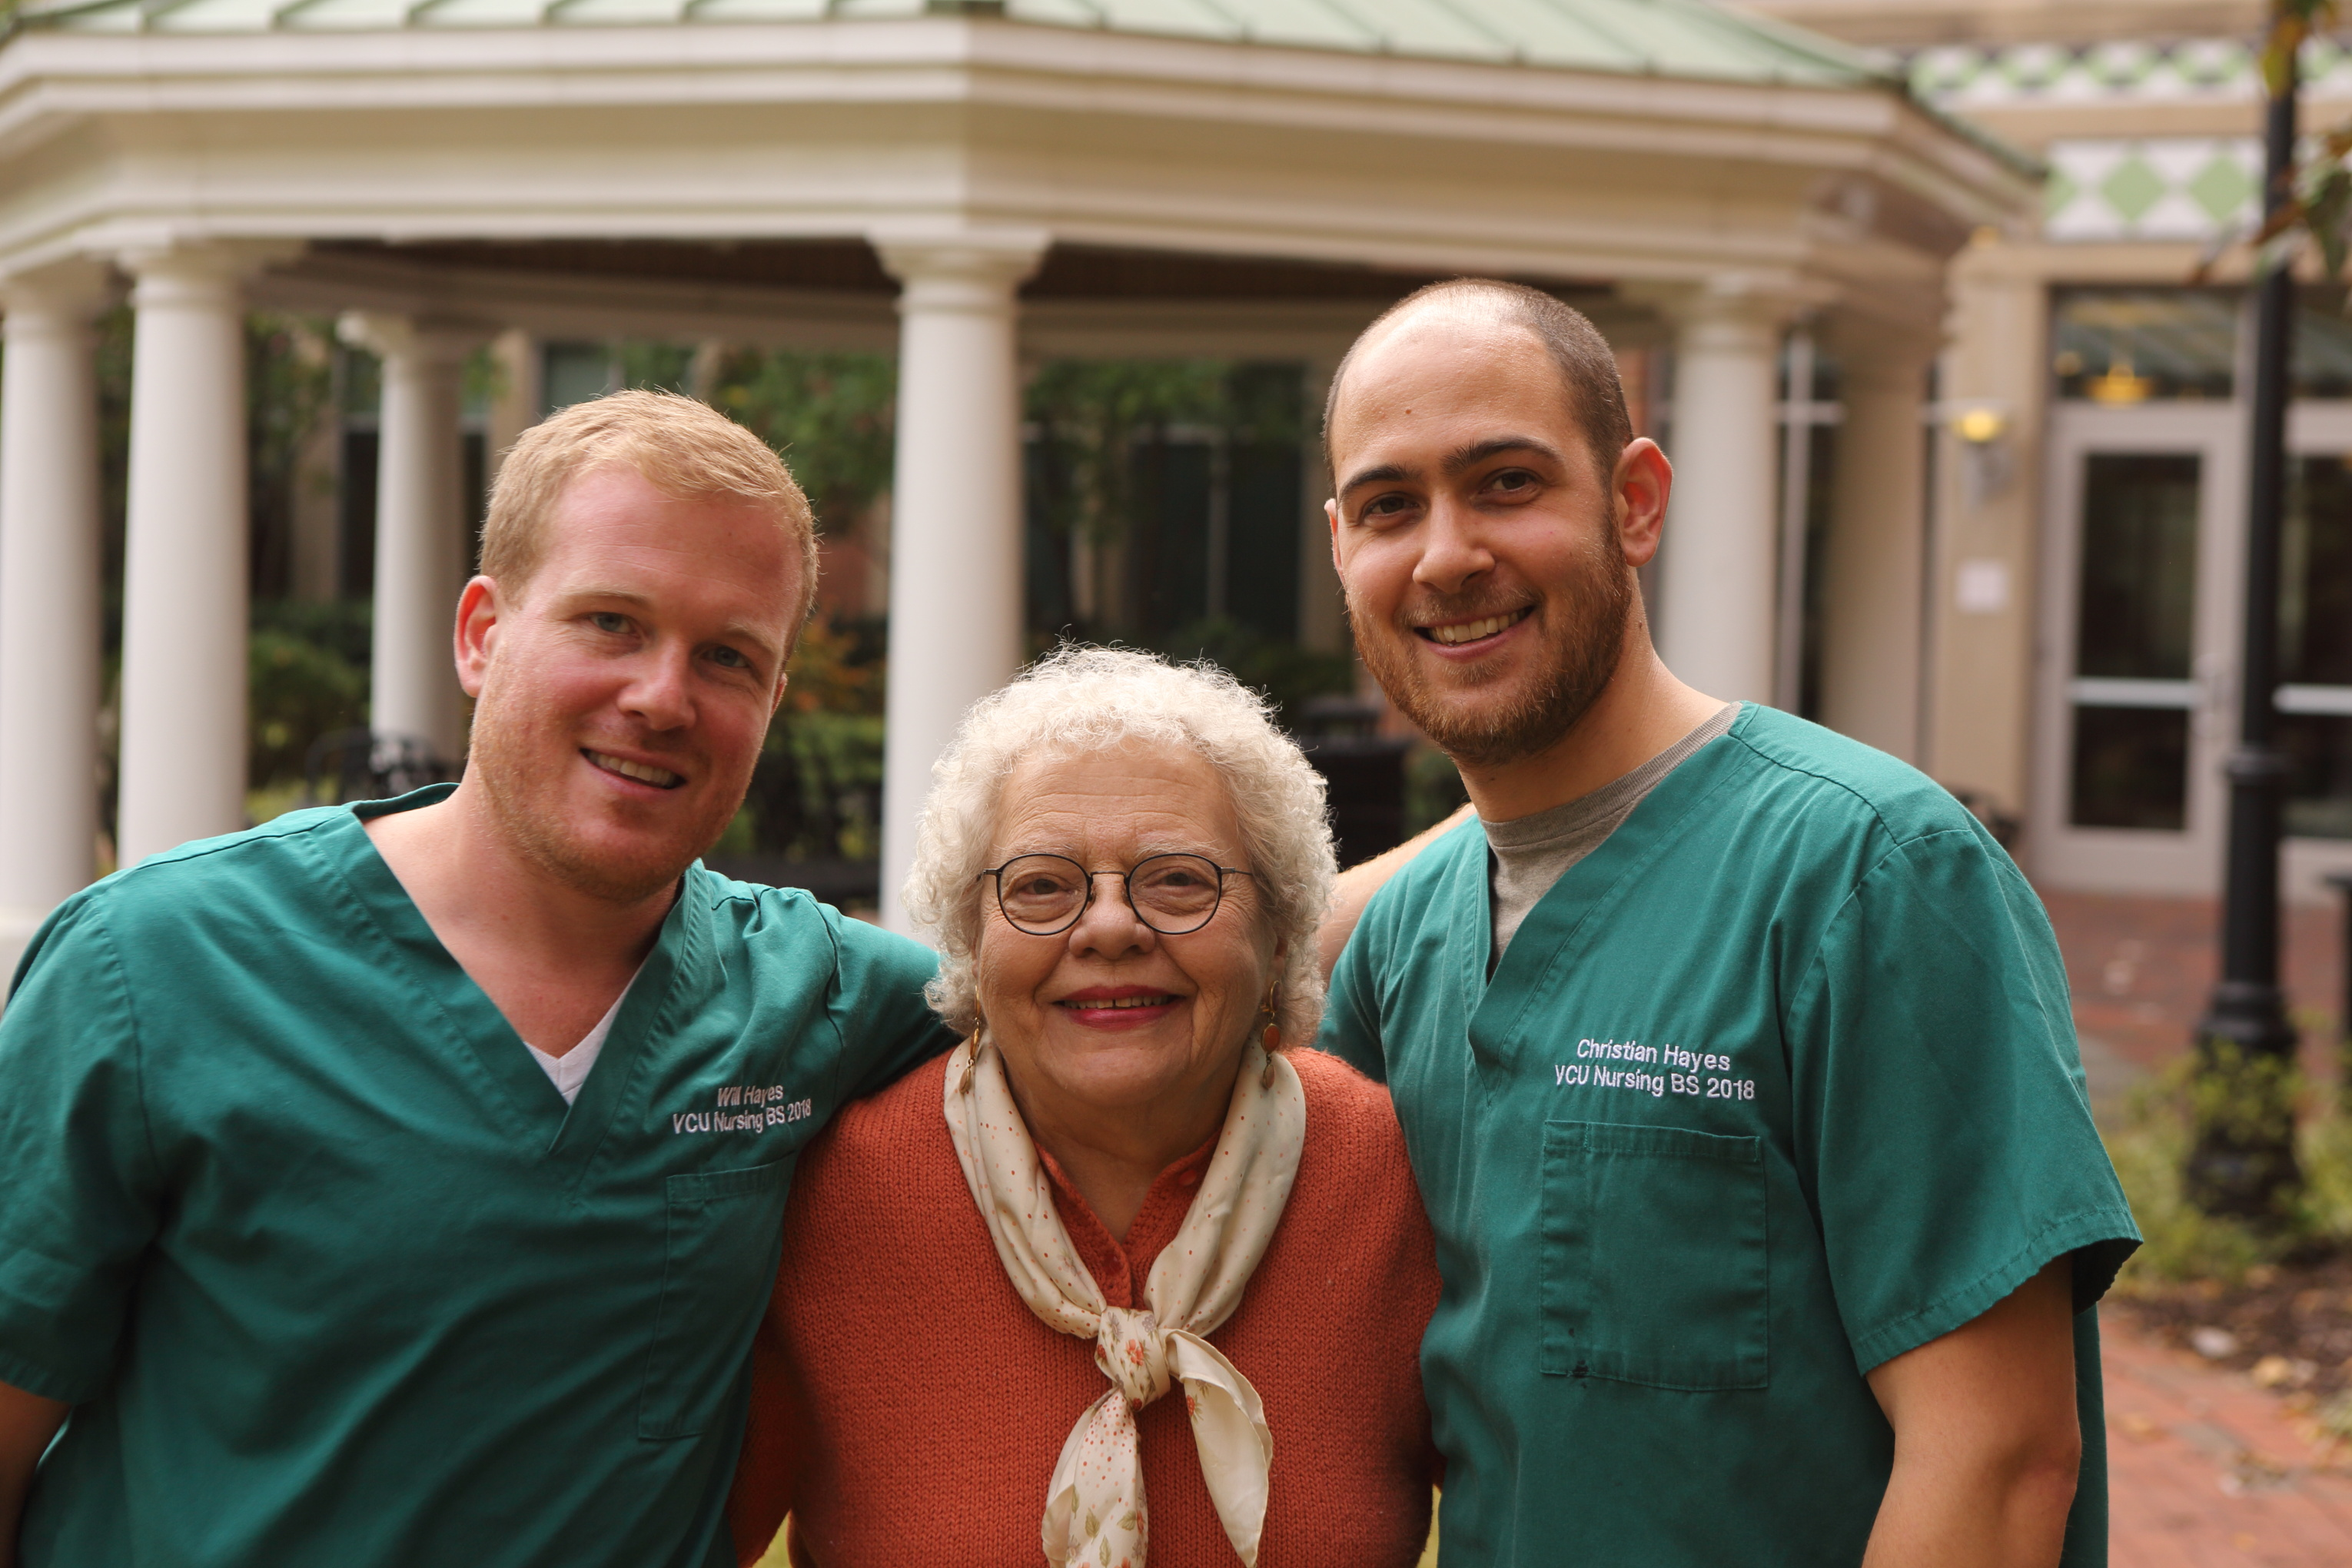 Careers in education and foreign service lead two brothers to nursing degrees